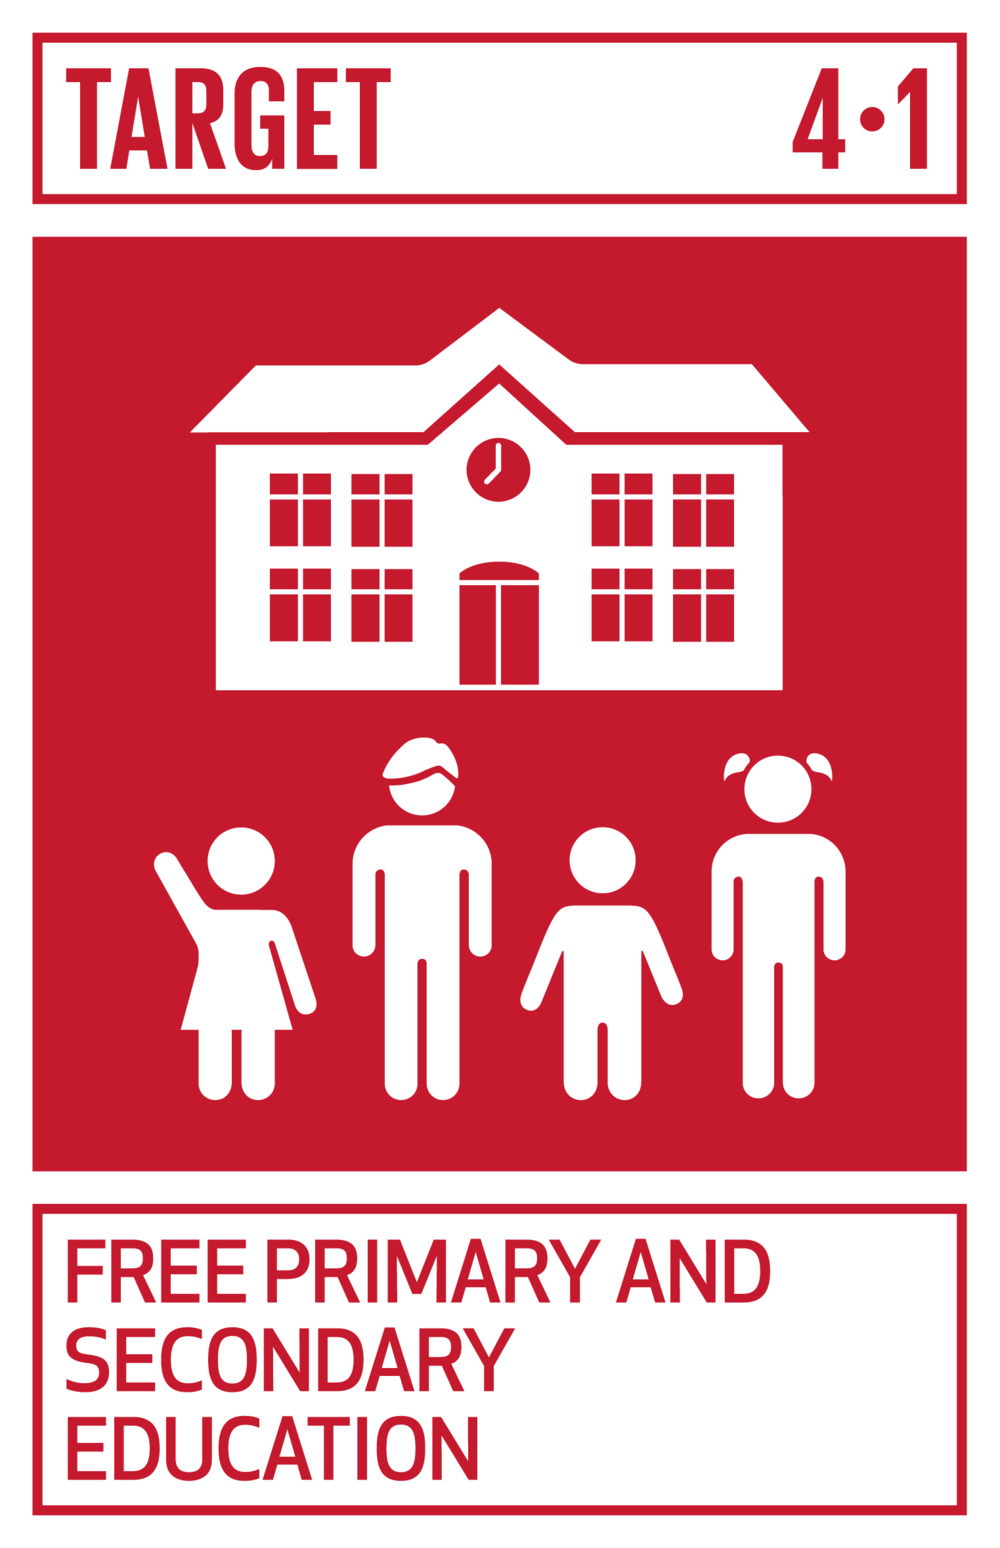 By 2030, ensure that all girls and boys complete free, equitable and quality primary and secondary education leading to relevant and effective learning outcomes.   INDICATOR    4.1.1  Proportion of children and young people (a) in grades 2/3; (b) at the end of primary; and (c) at the end of lower secondary achieving at least a minimum proficiency level in (i) reading and (ii) mathematics, by sex